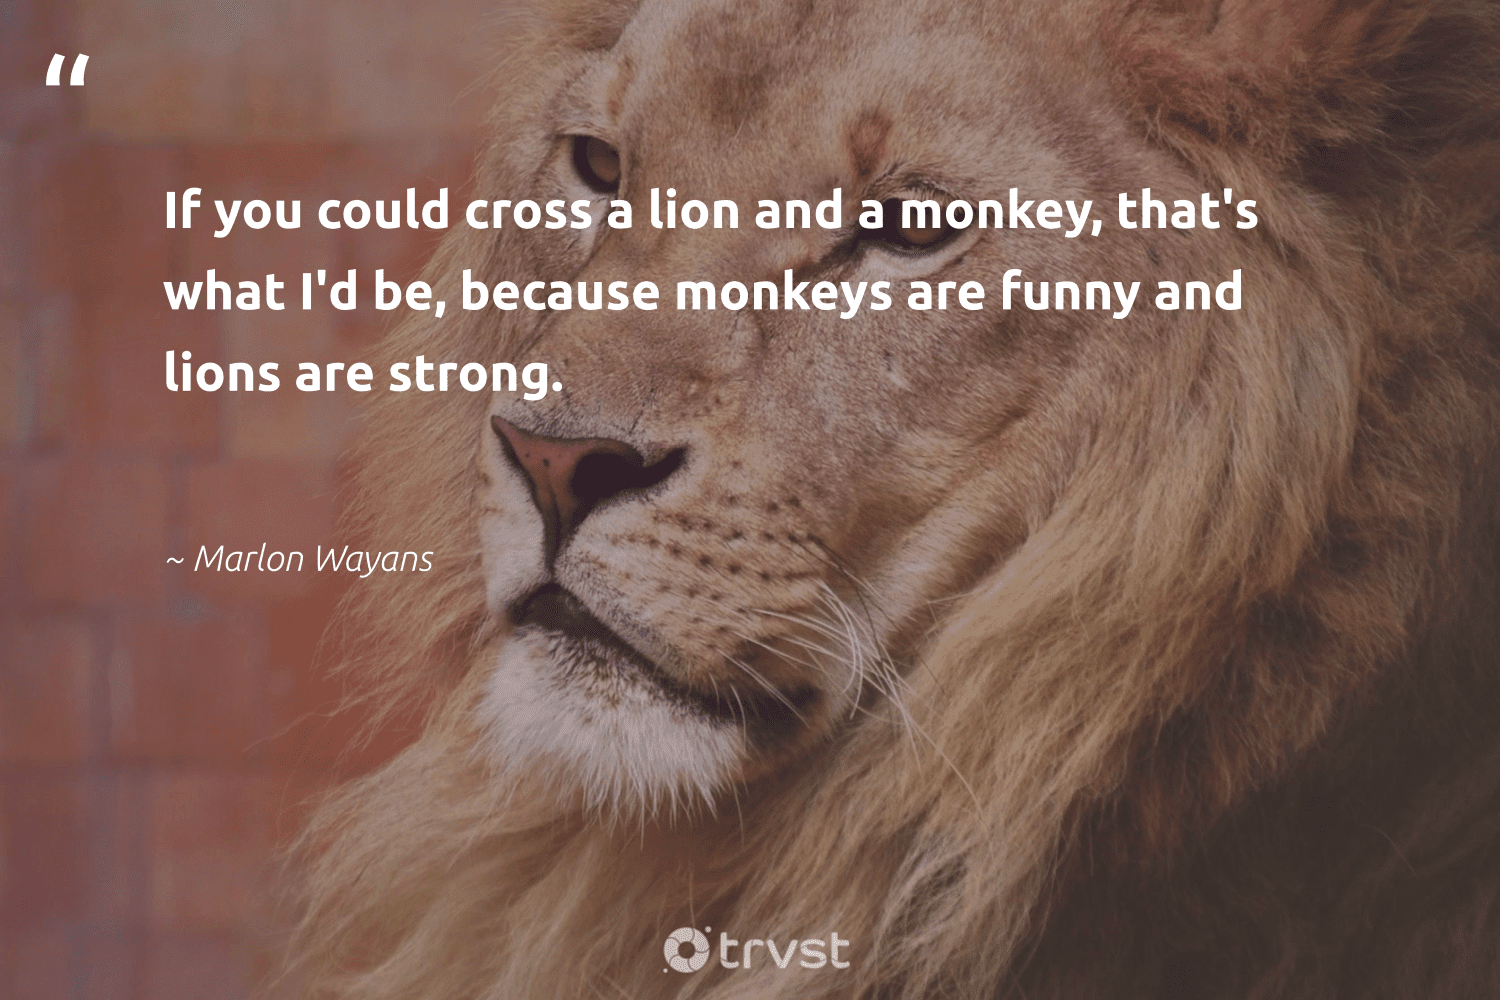 """""""If you could cross a lion and a monkey, that's what I'd be, because monkeys are funny and lions are strong.""""  - Marlon Wayans #trvst #quotes #lion #lions #monkey #monkeys #splendidanimals #socialimpact #big5 #collectiveaction #biodiversity #dotherightthing"""